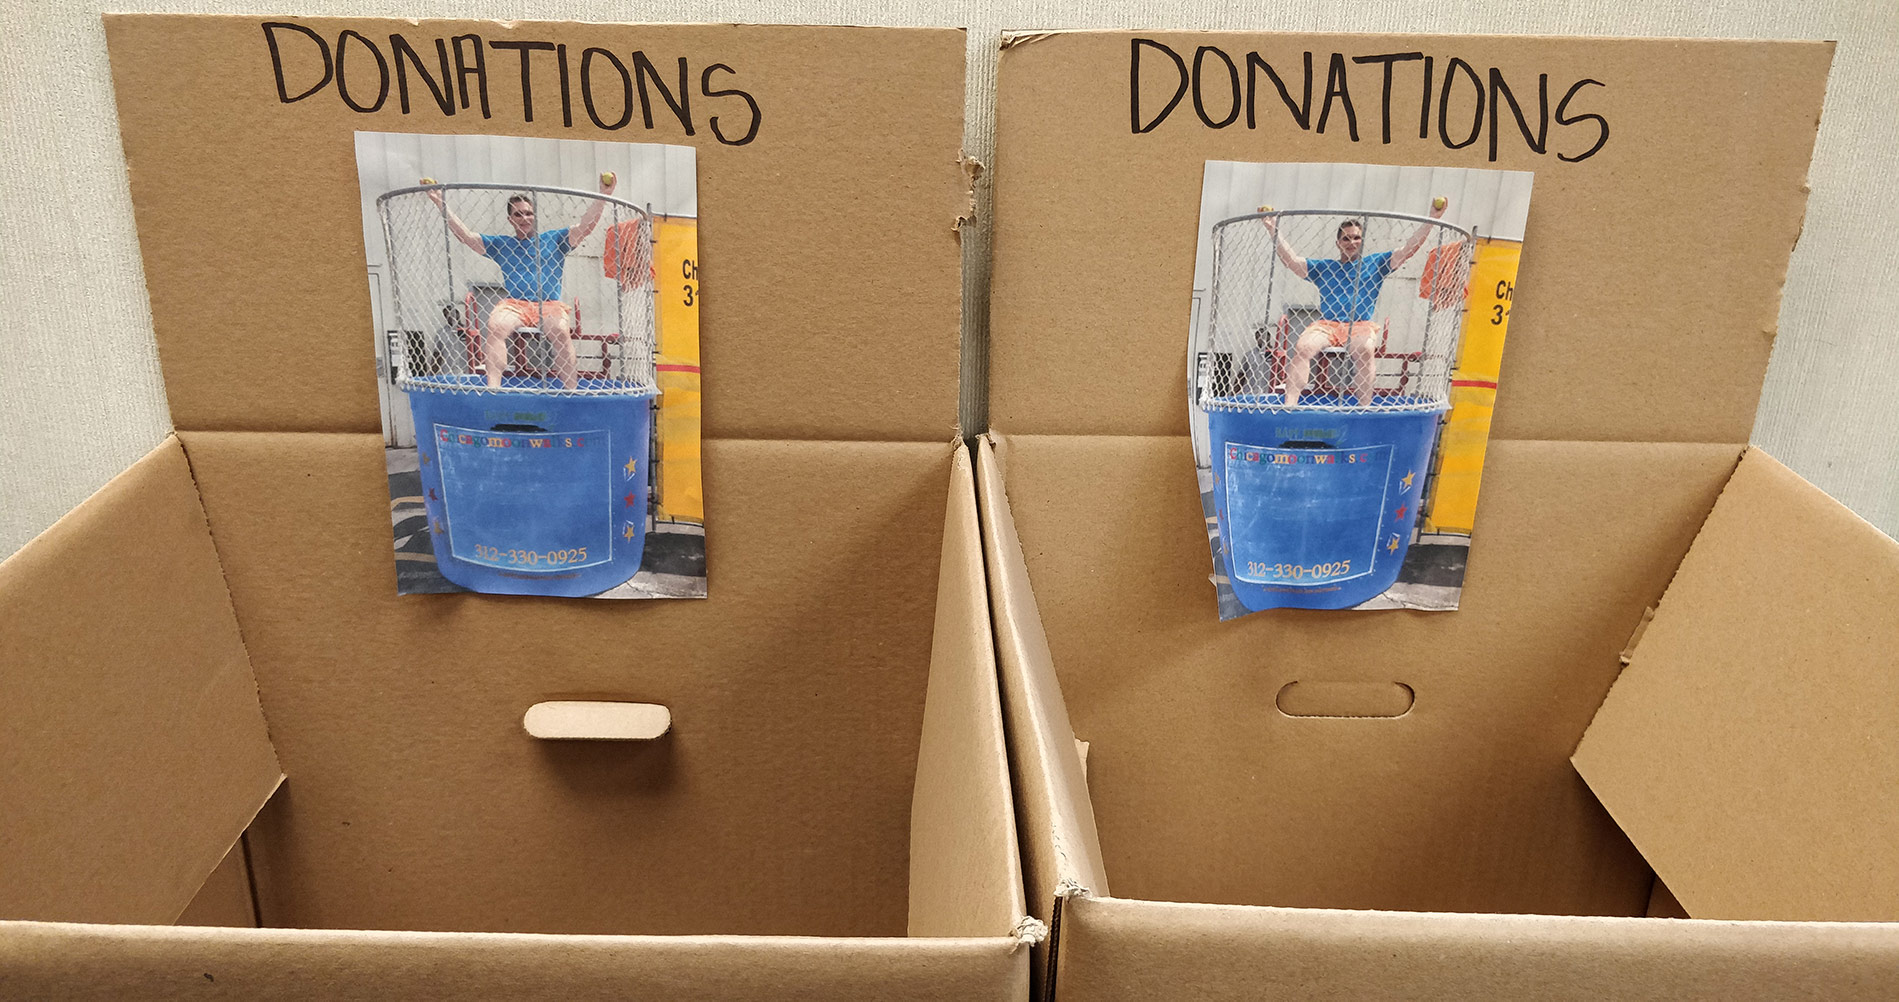 Donations for Albany Park Community Center – New World Van Lines